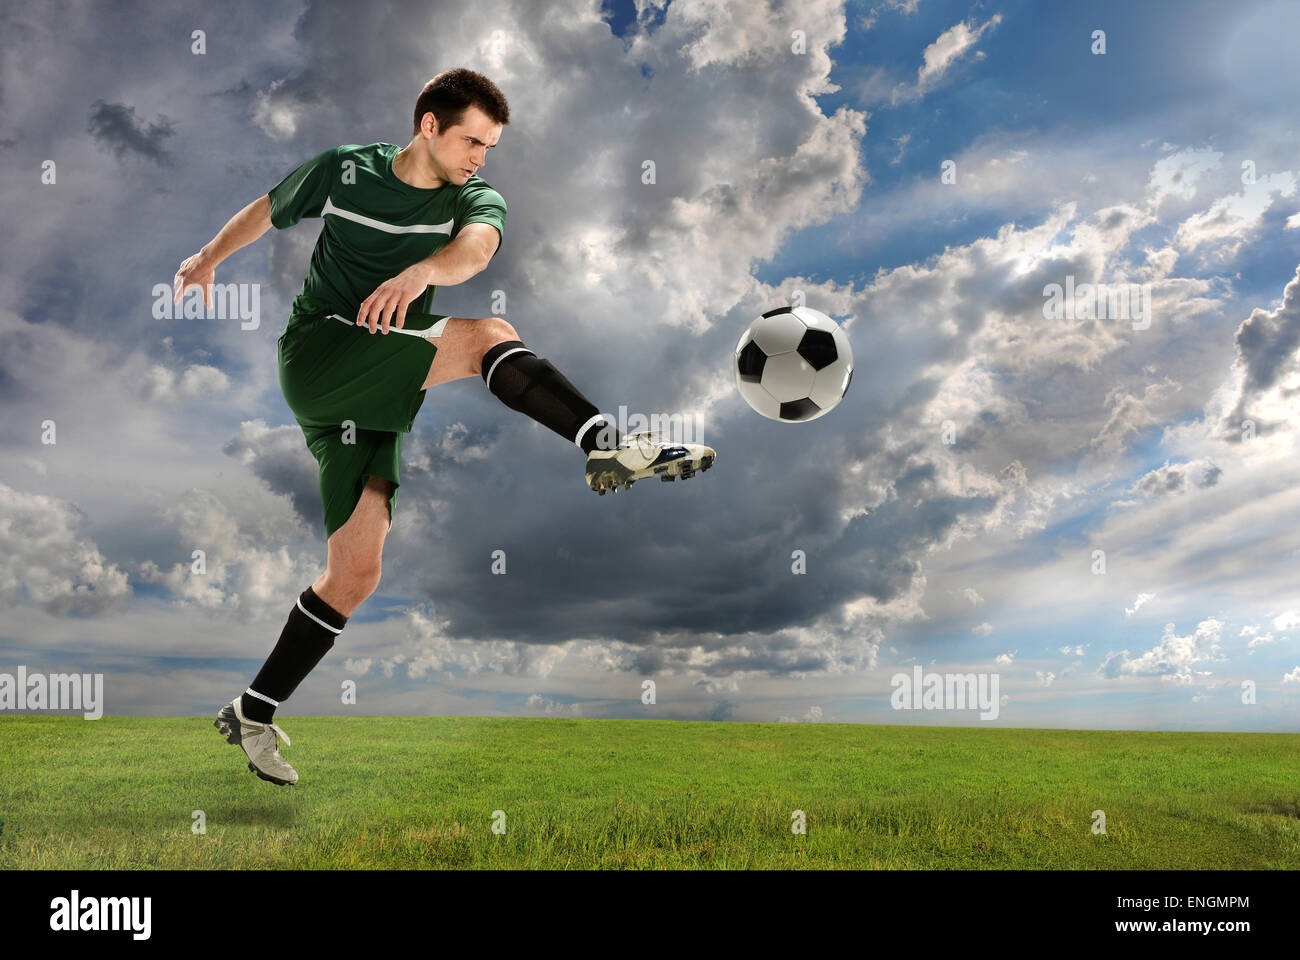 Young soccer player kicking ball outdoors - Stock Image